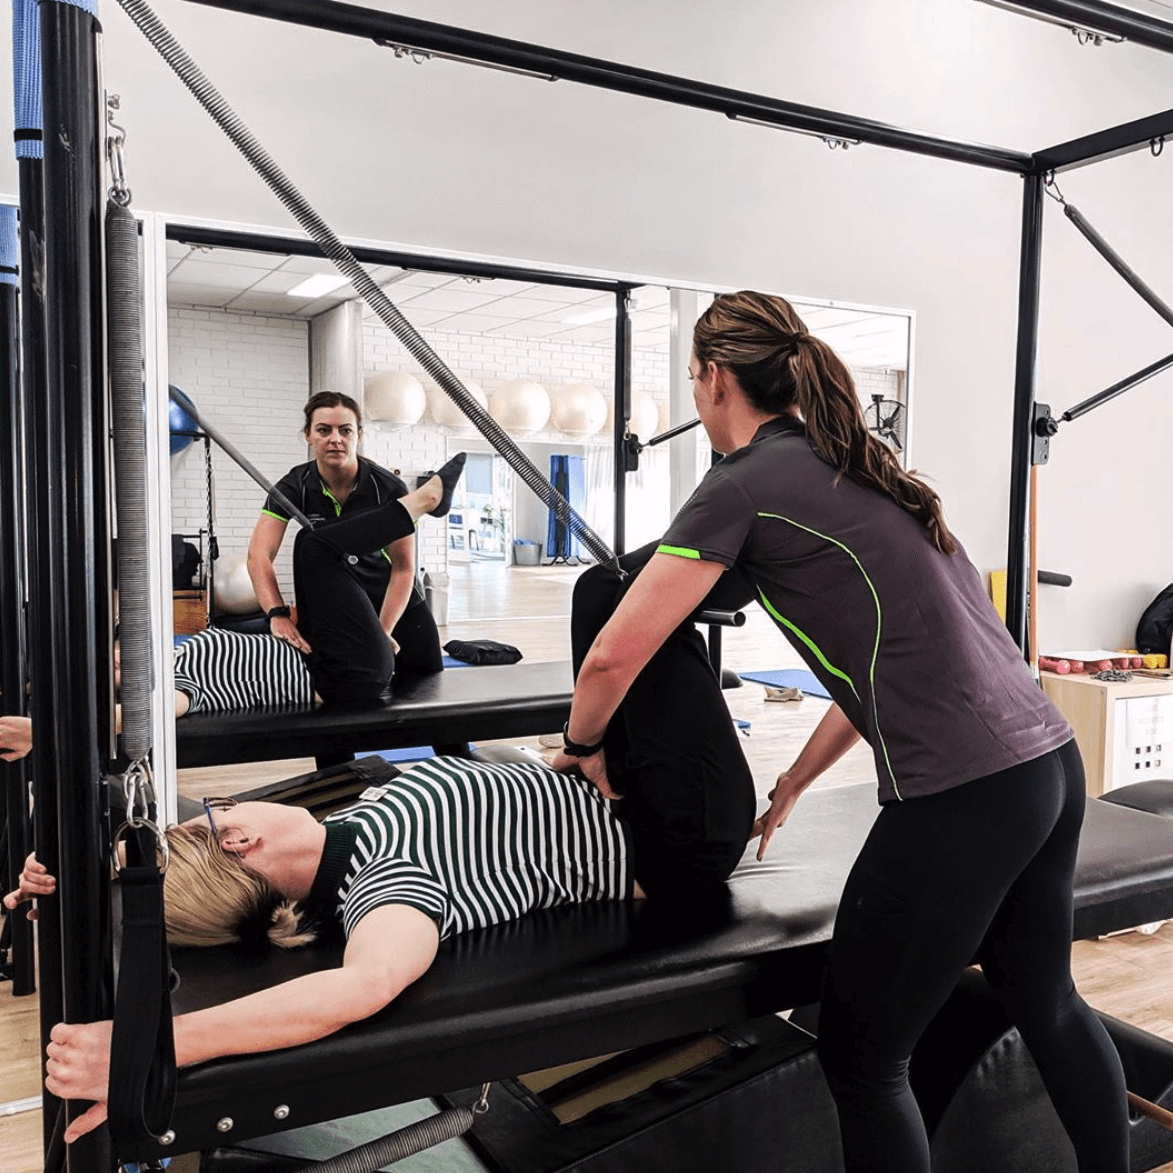 Studio Pilates Physiotherapist - The Studio Midland